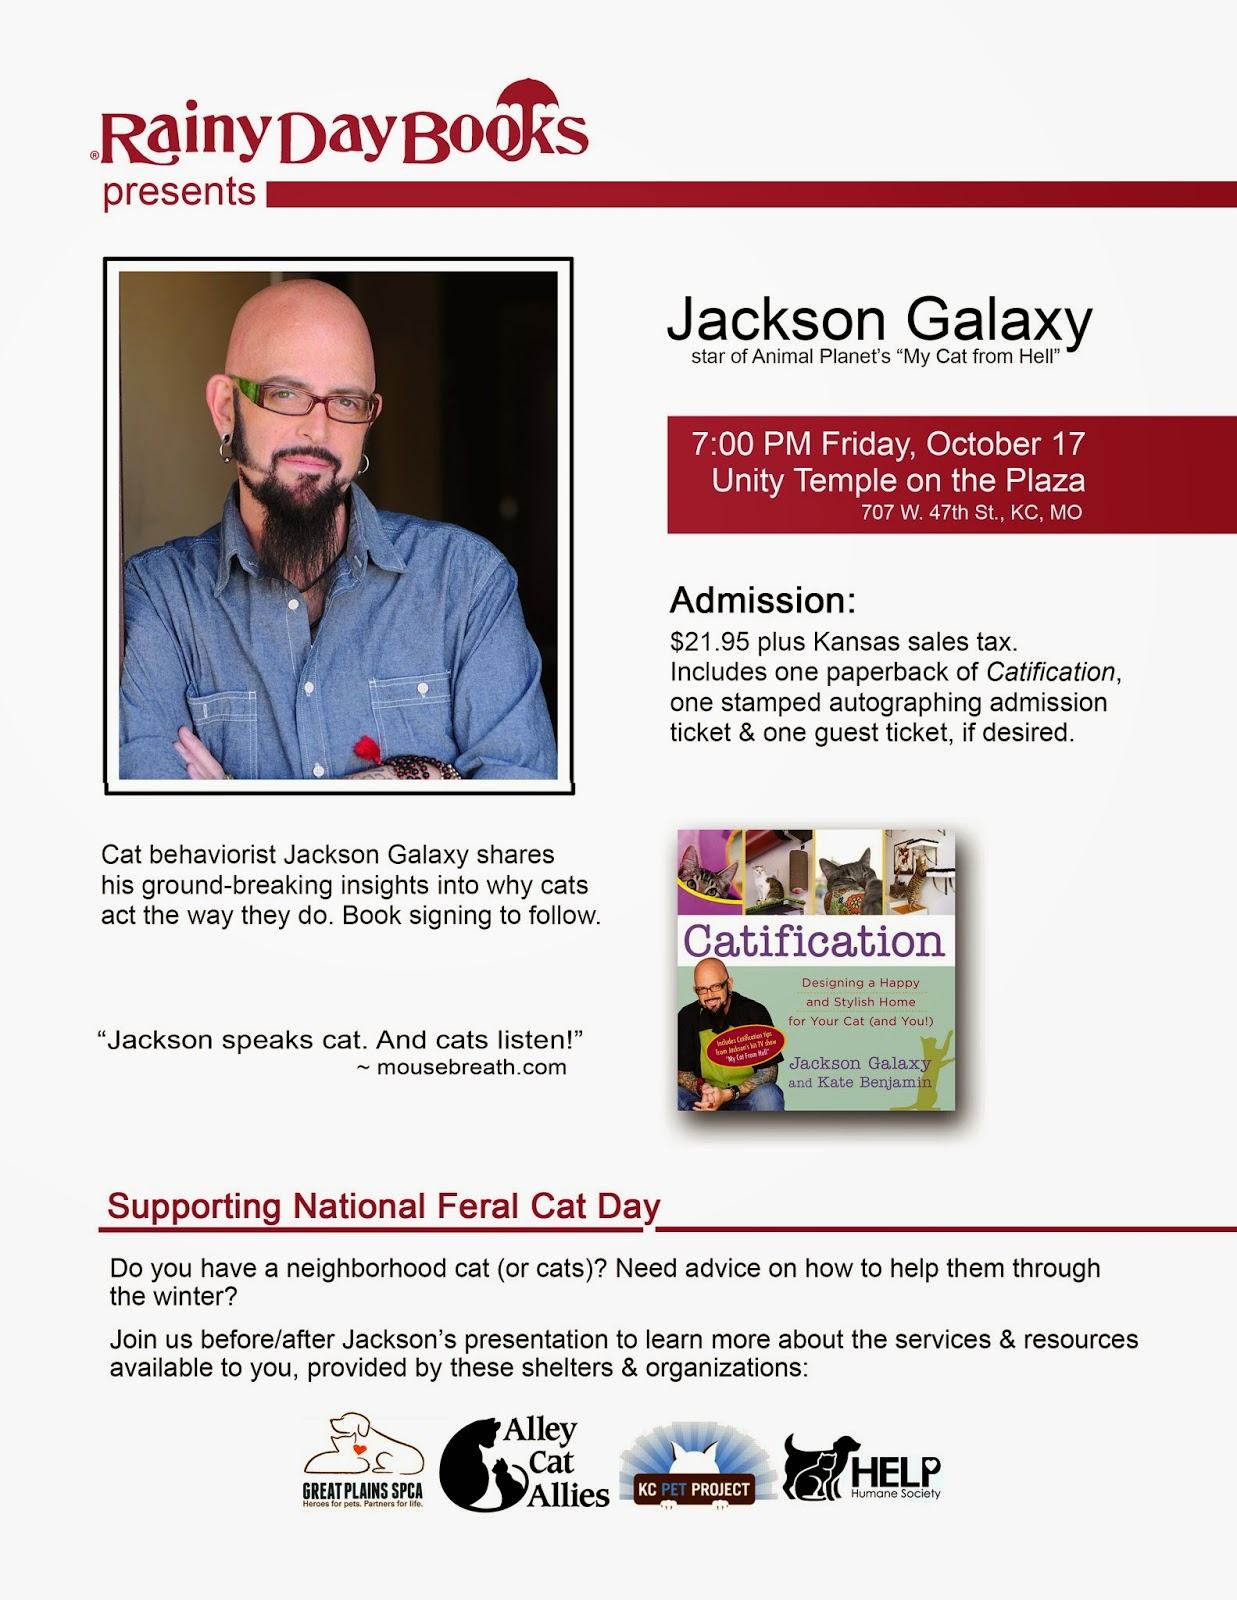 http://rainydaybooks.com/JacksonGalaxy